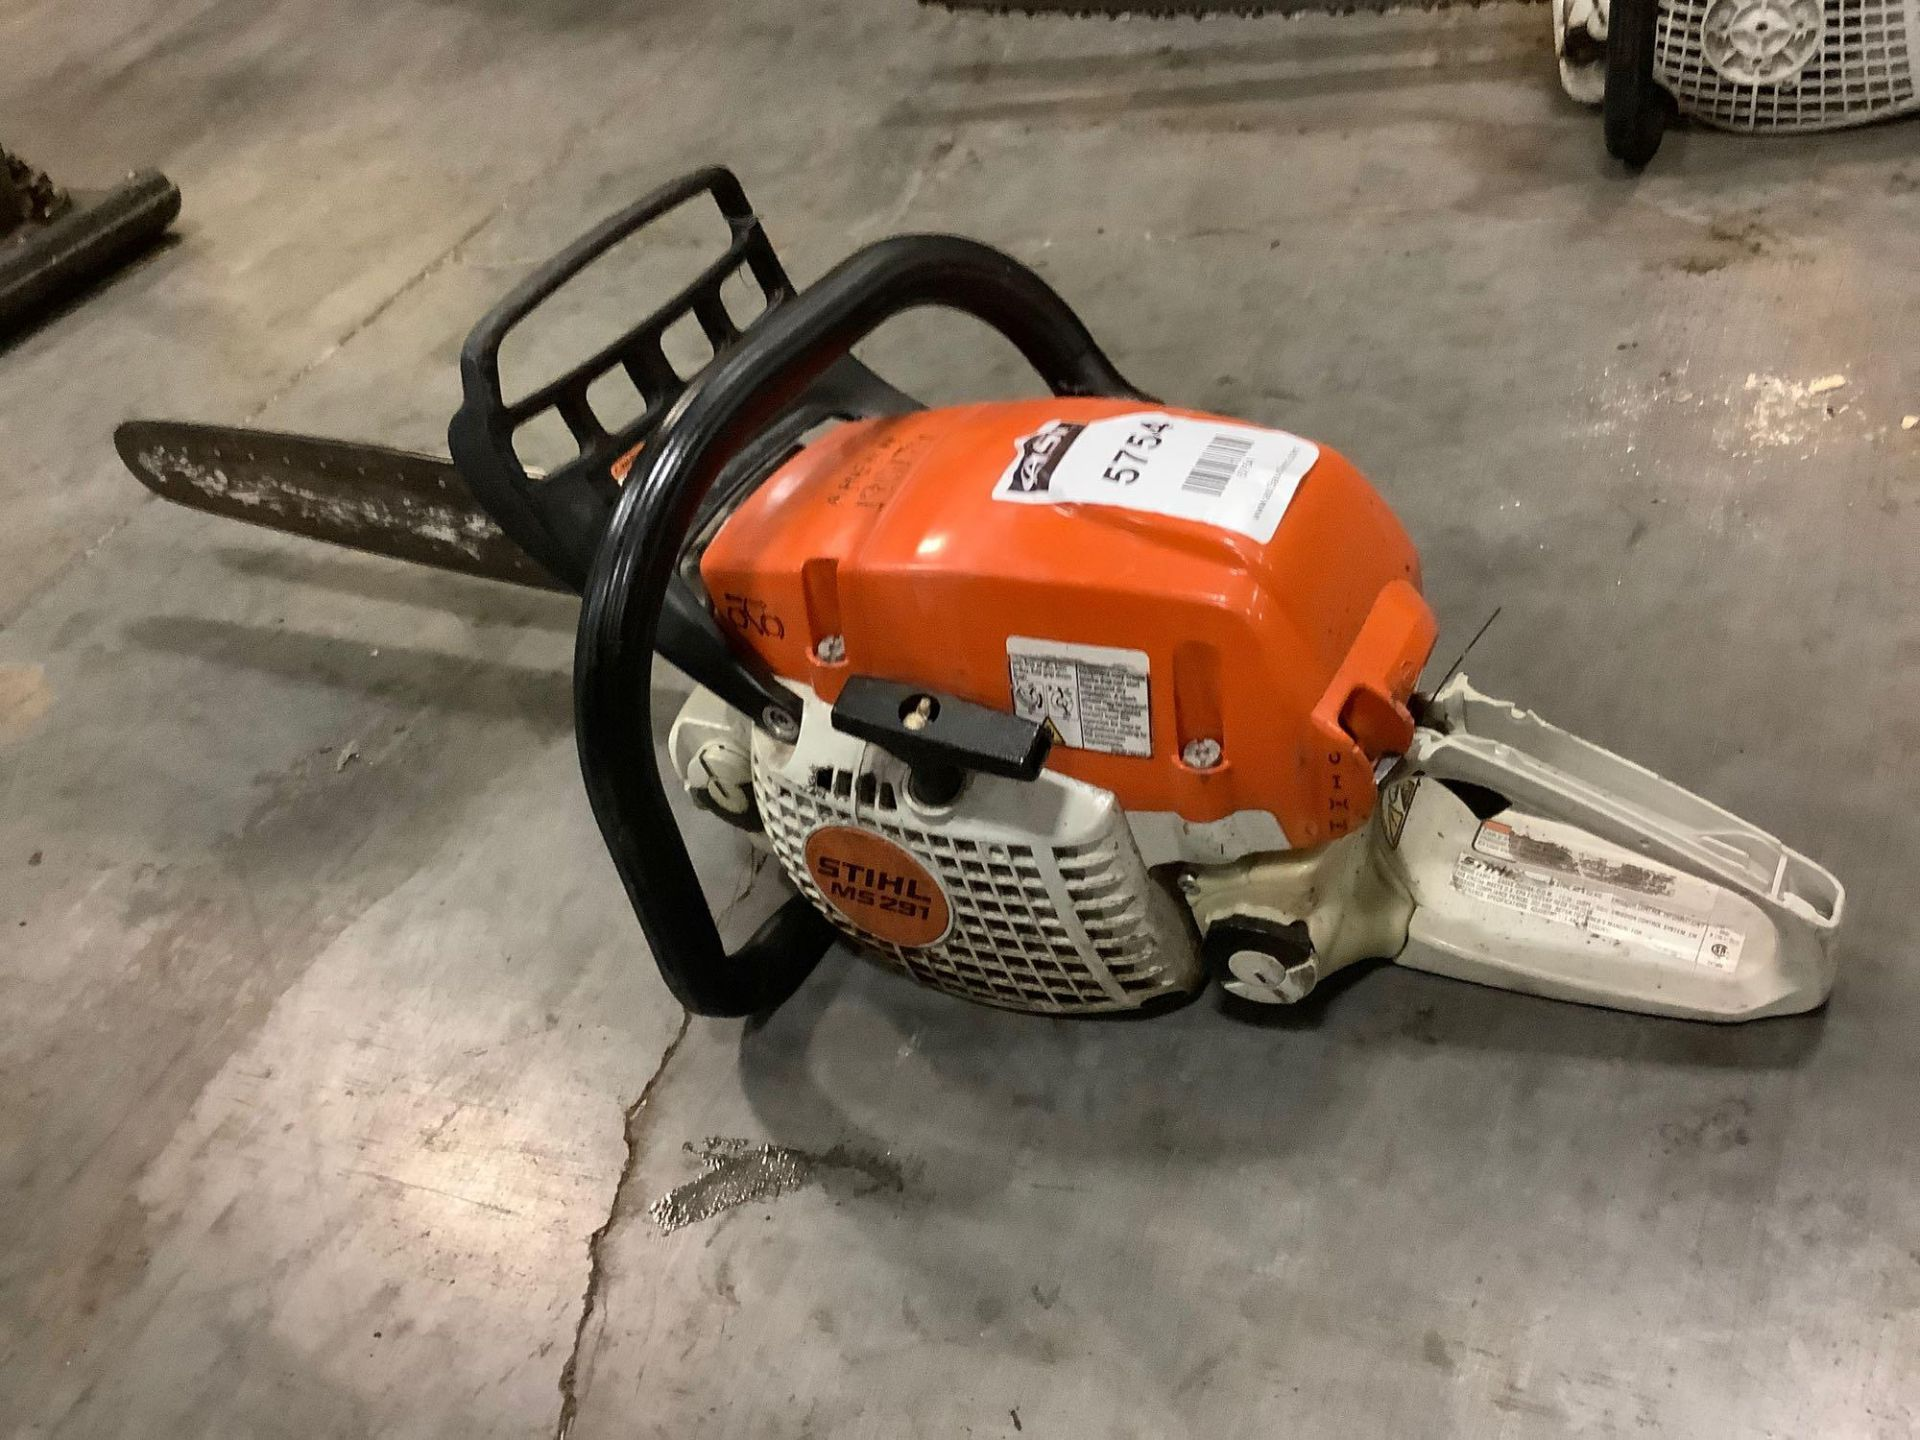 2017 STIHL CHAIN SAW MODEL MS291 MISSING CHAIN & HANDLE IS BROKEN - Image 3 of 6